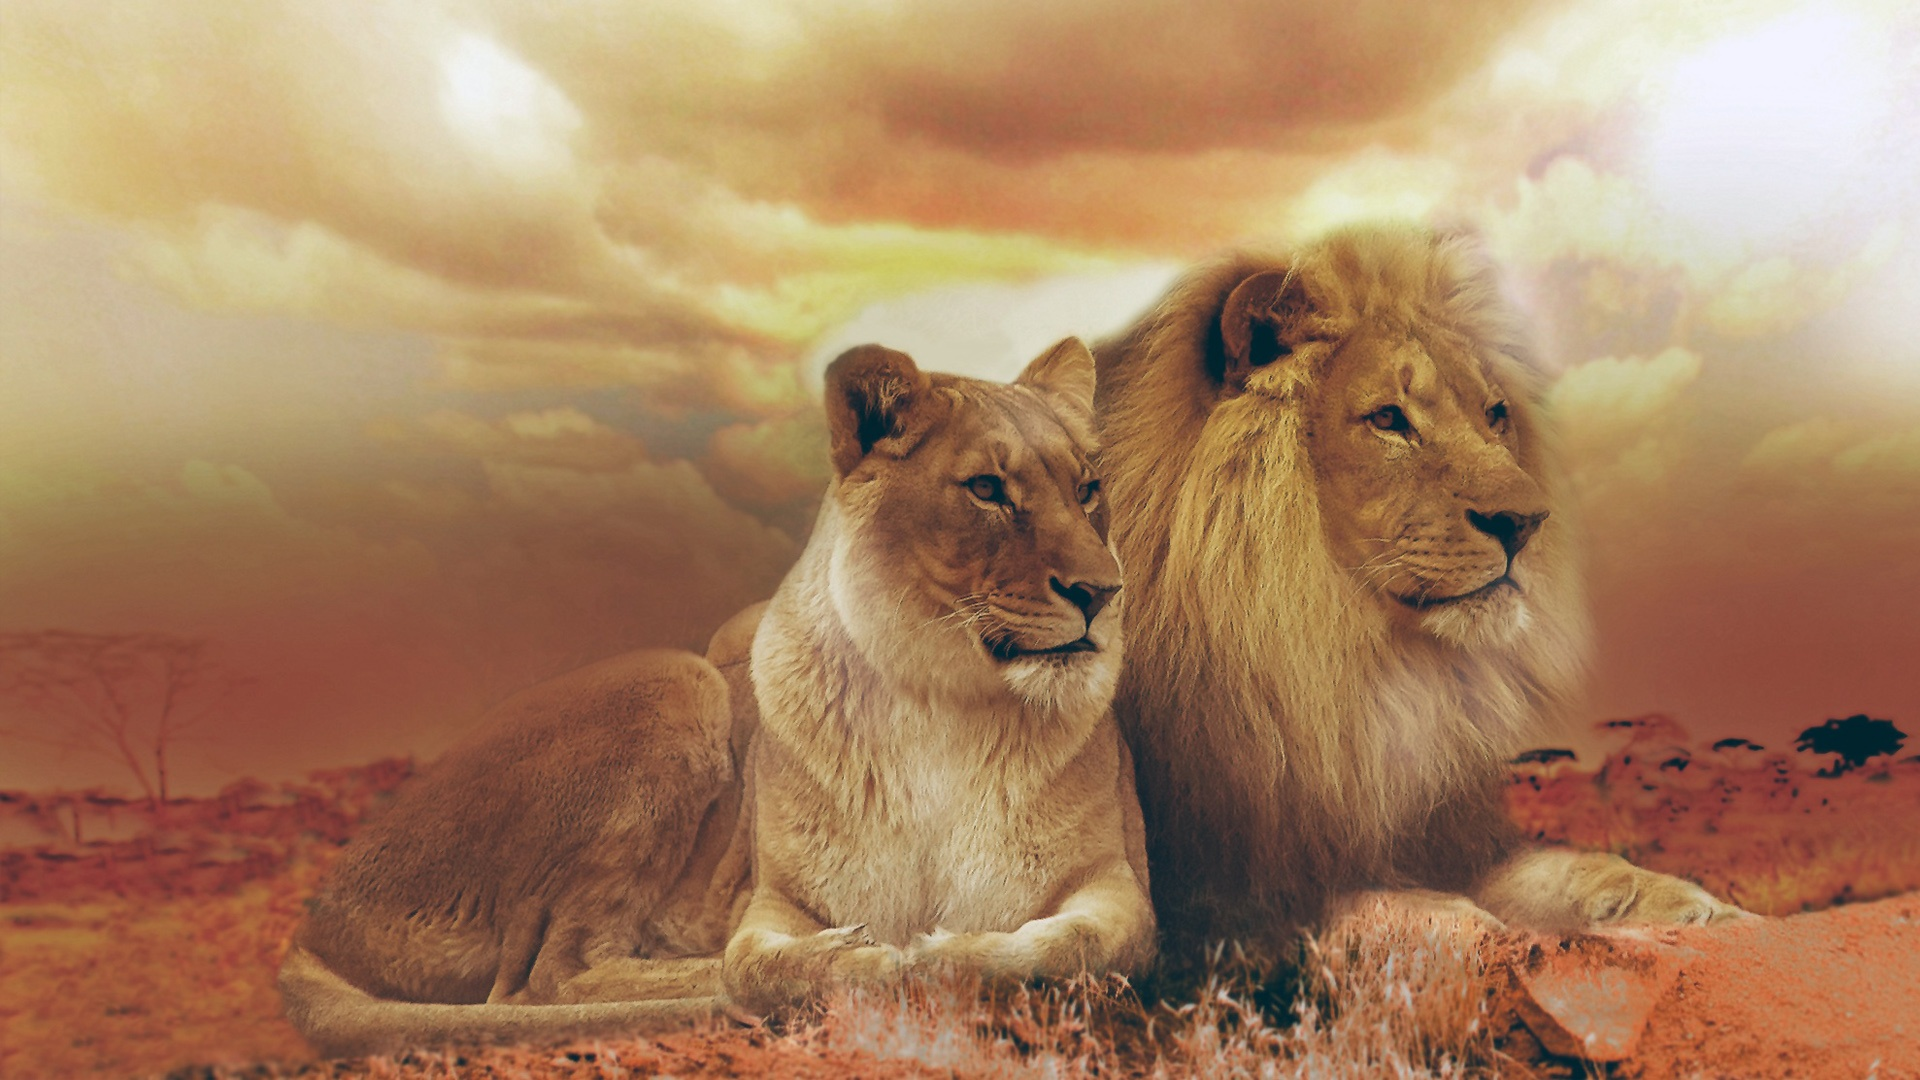 lion and lioness, hd animals, 4k wallpapers, images, backgrounds